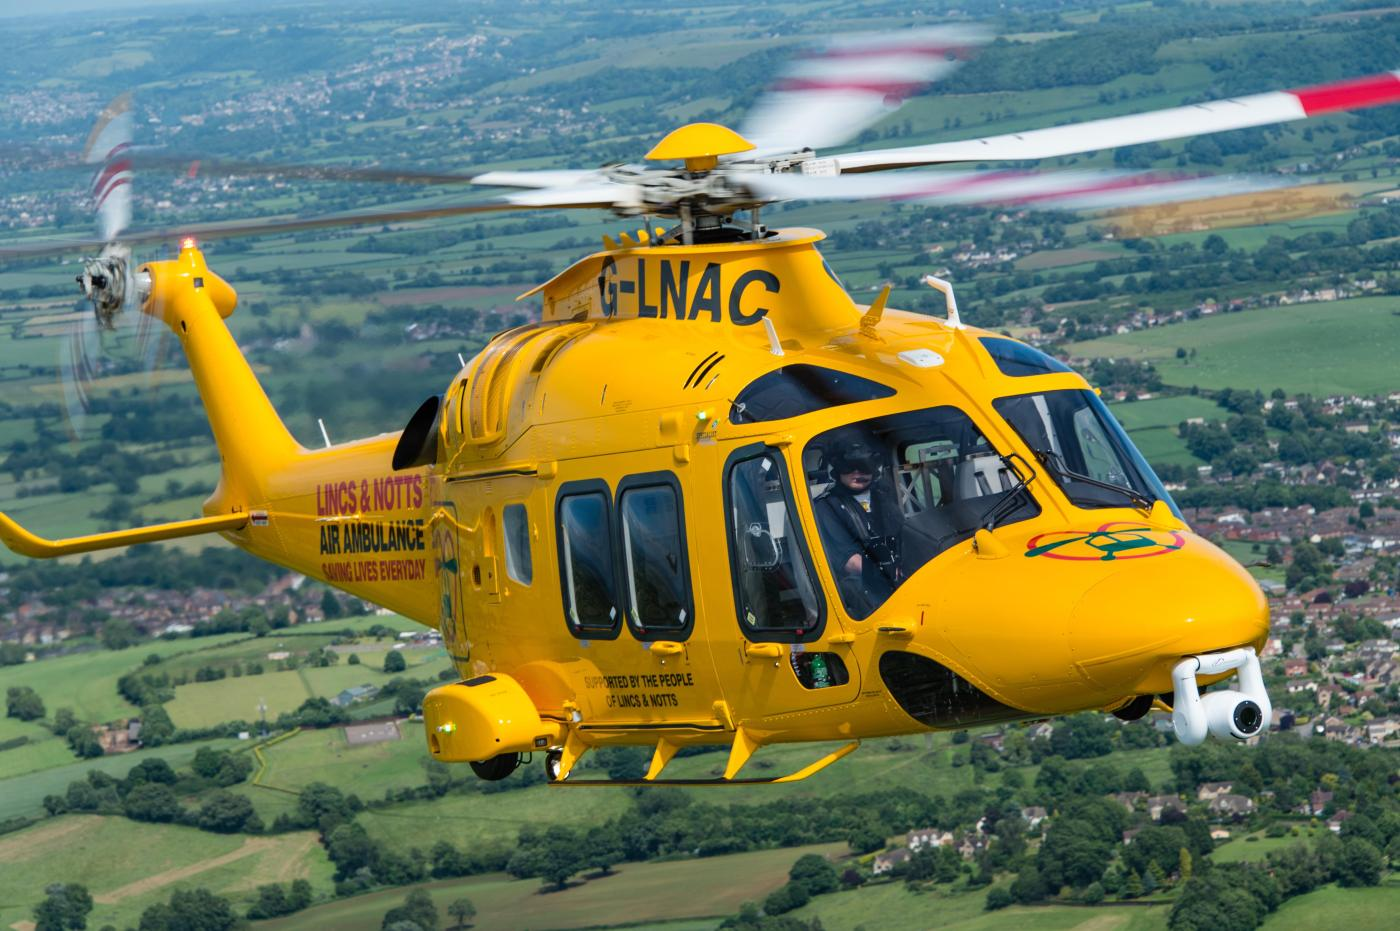 The Lincs & Notts Air Ambulance takes to the skies.